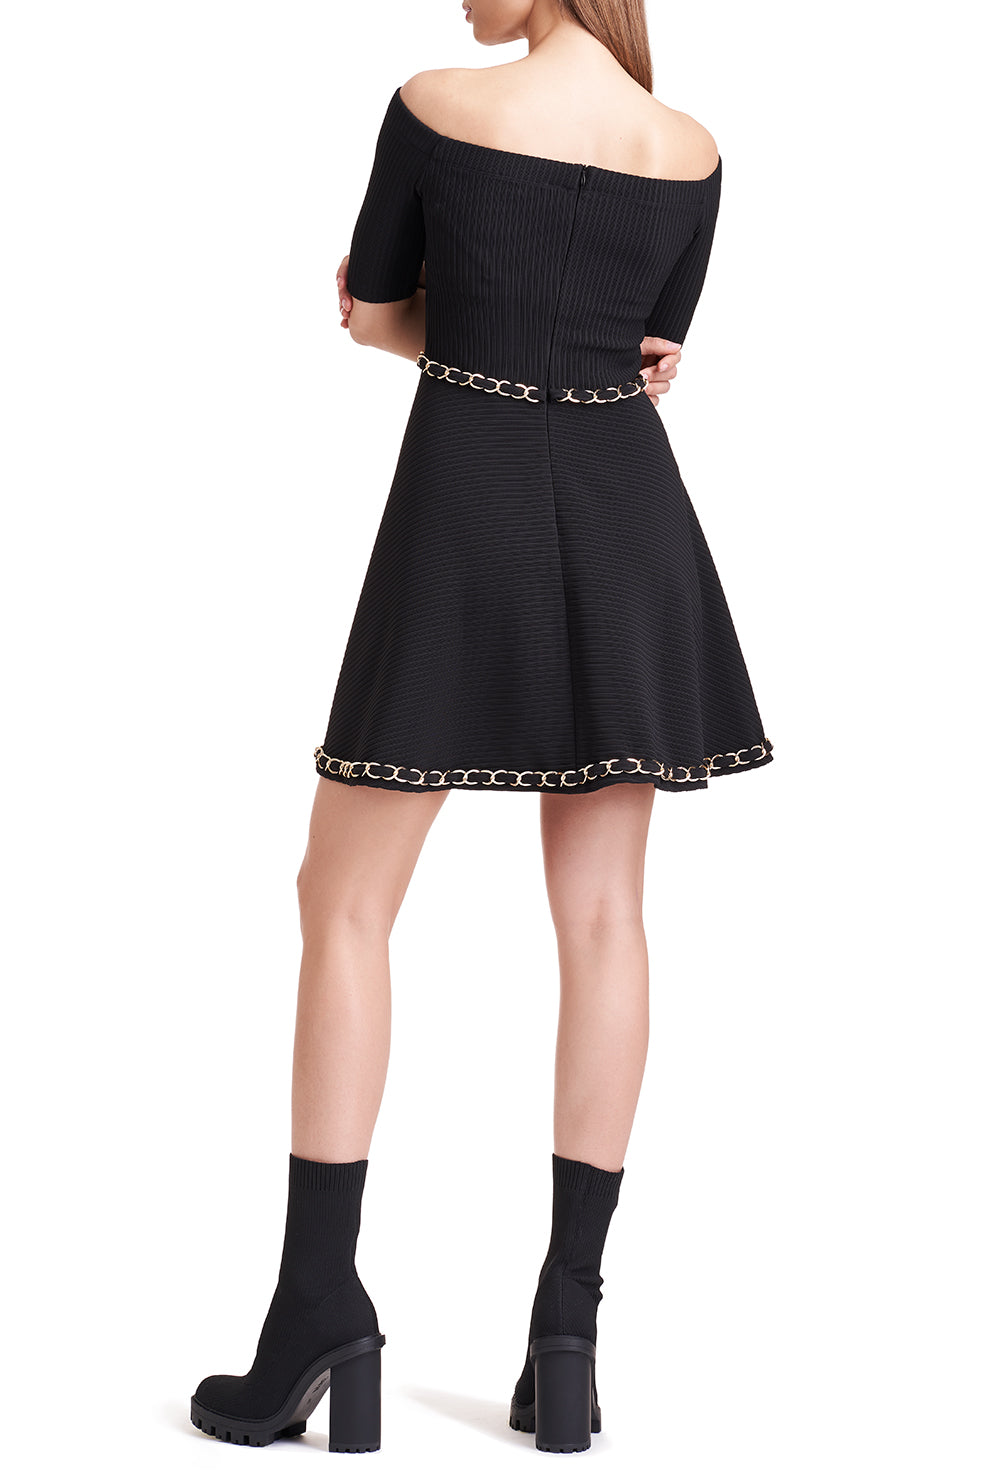 Karla Chain Embellished Black Dress